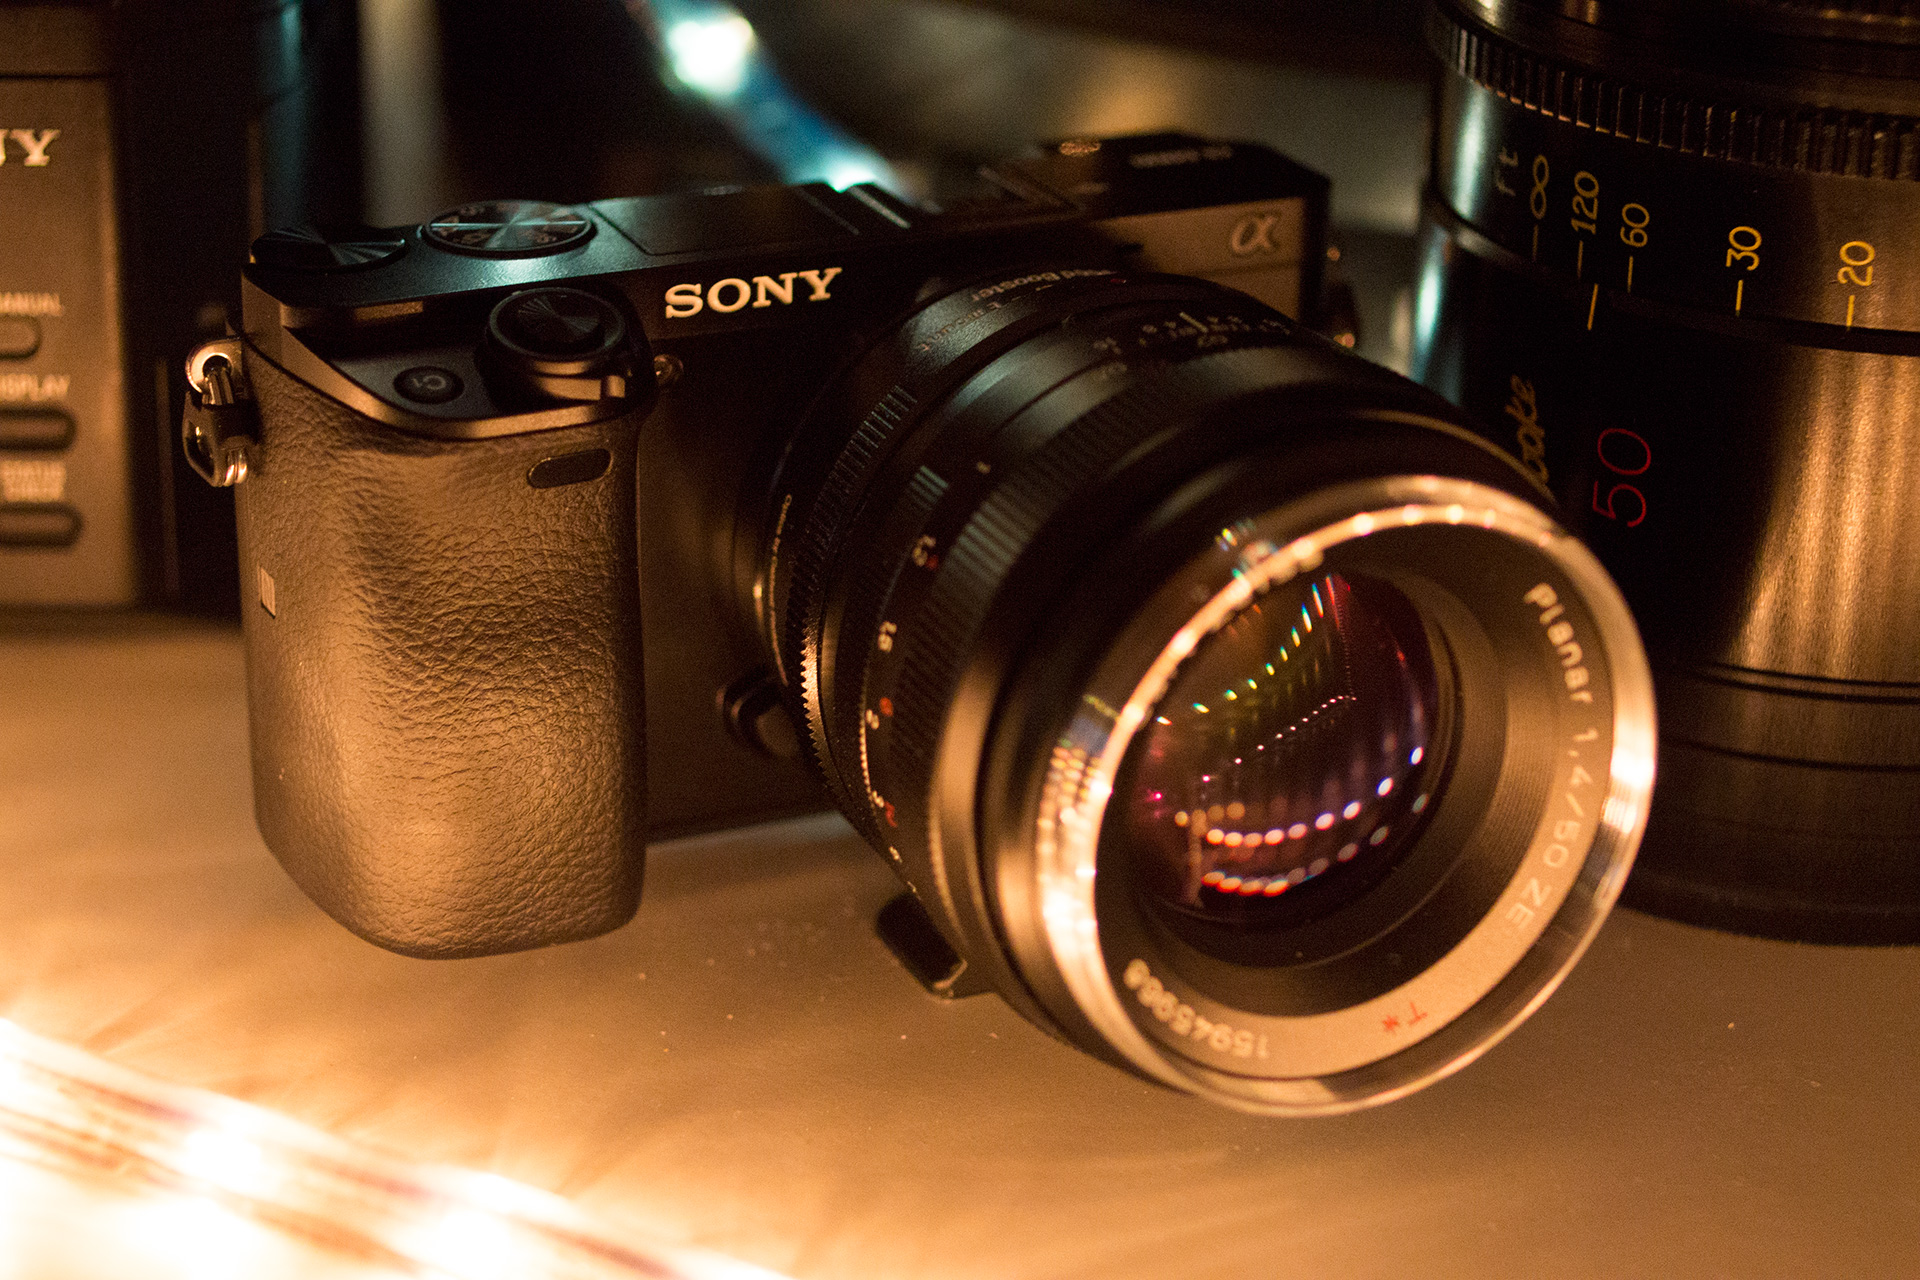 Sony Alpha A6000 video mode makes huge improvement - EOSHD